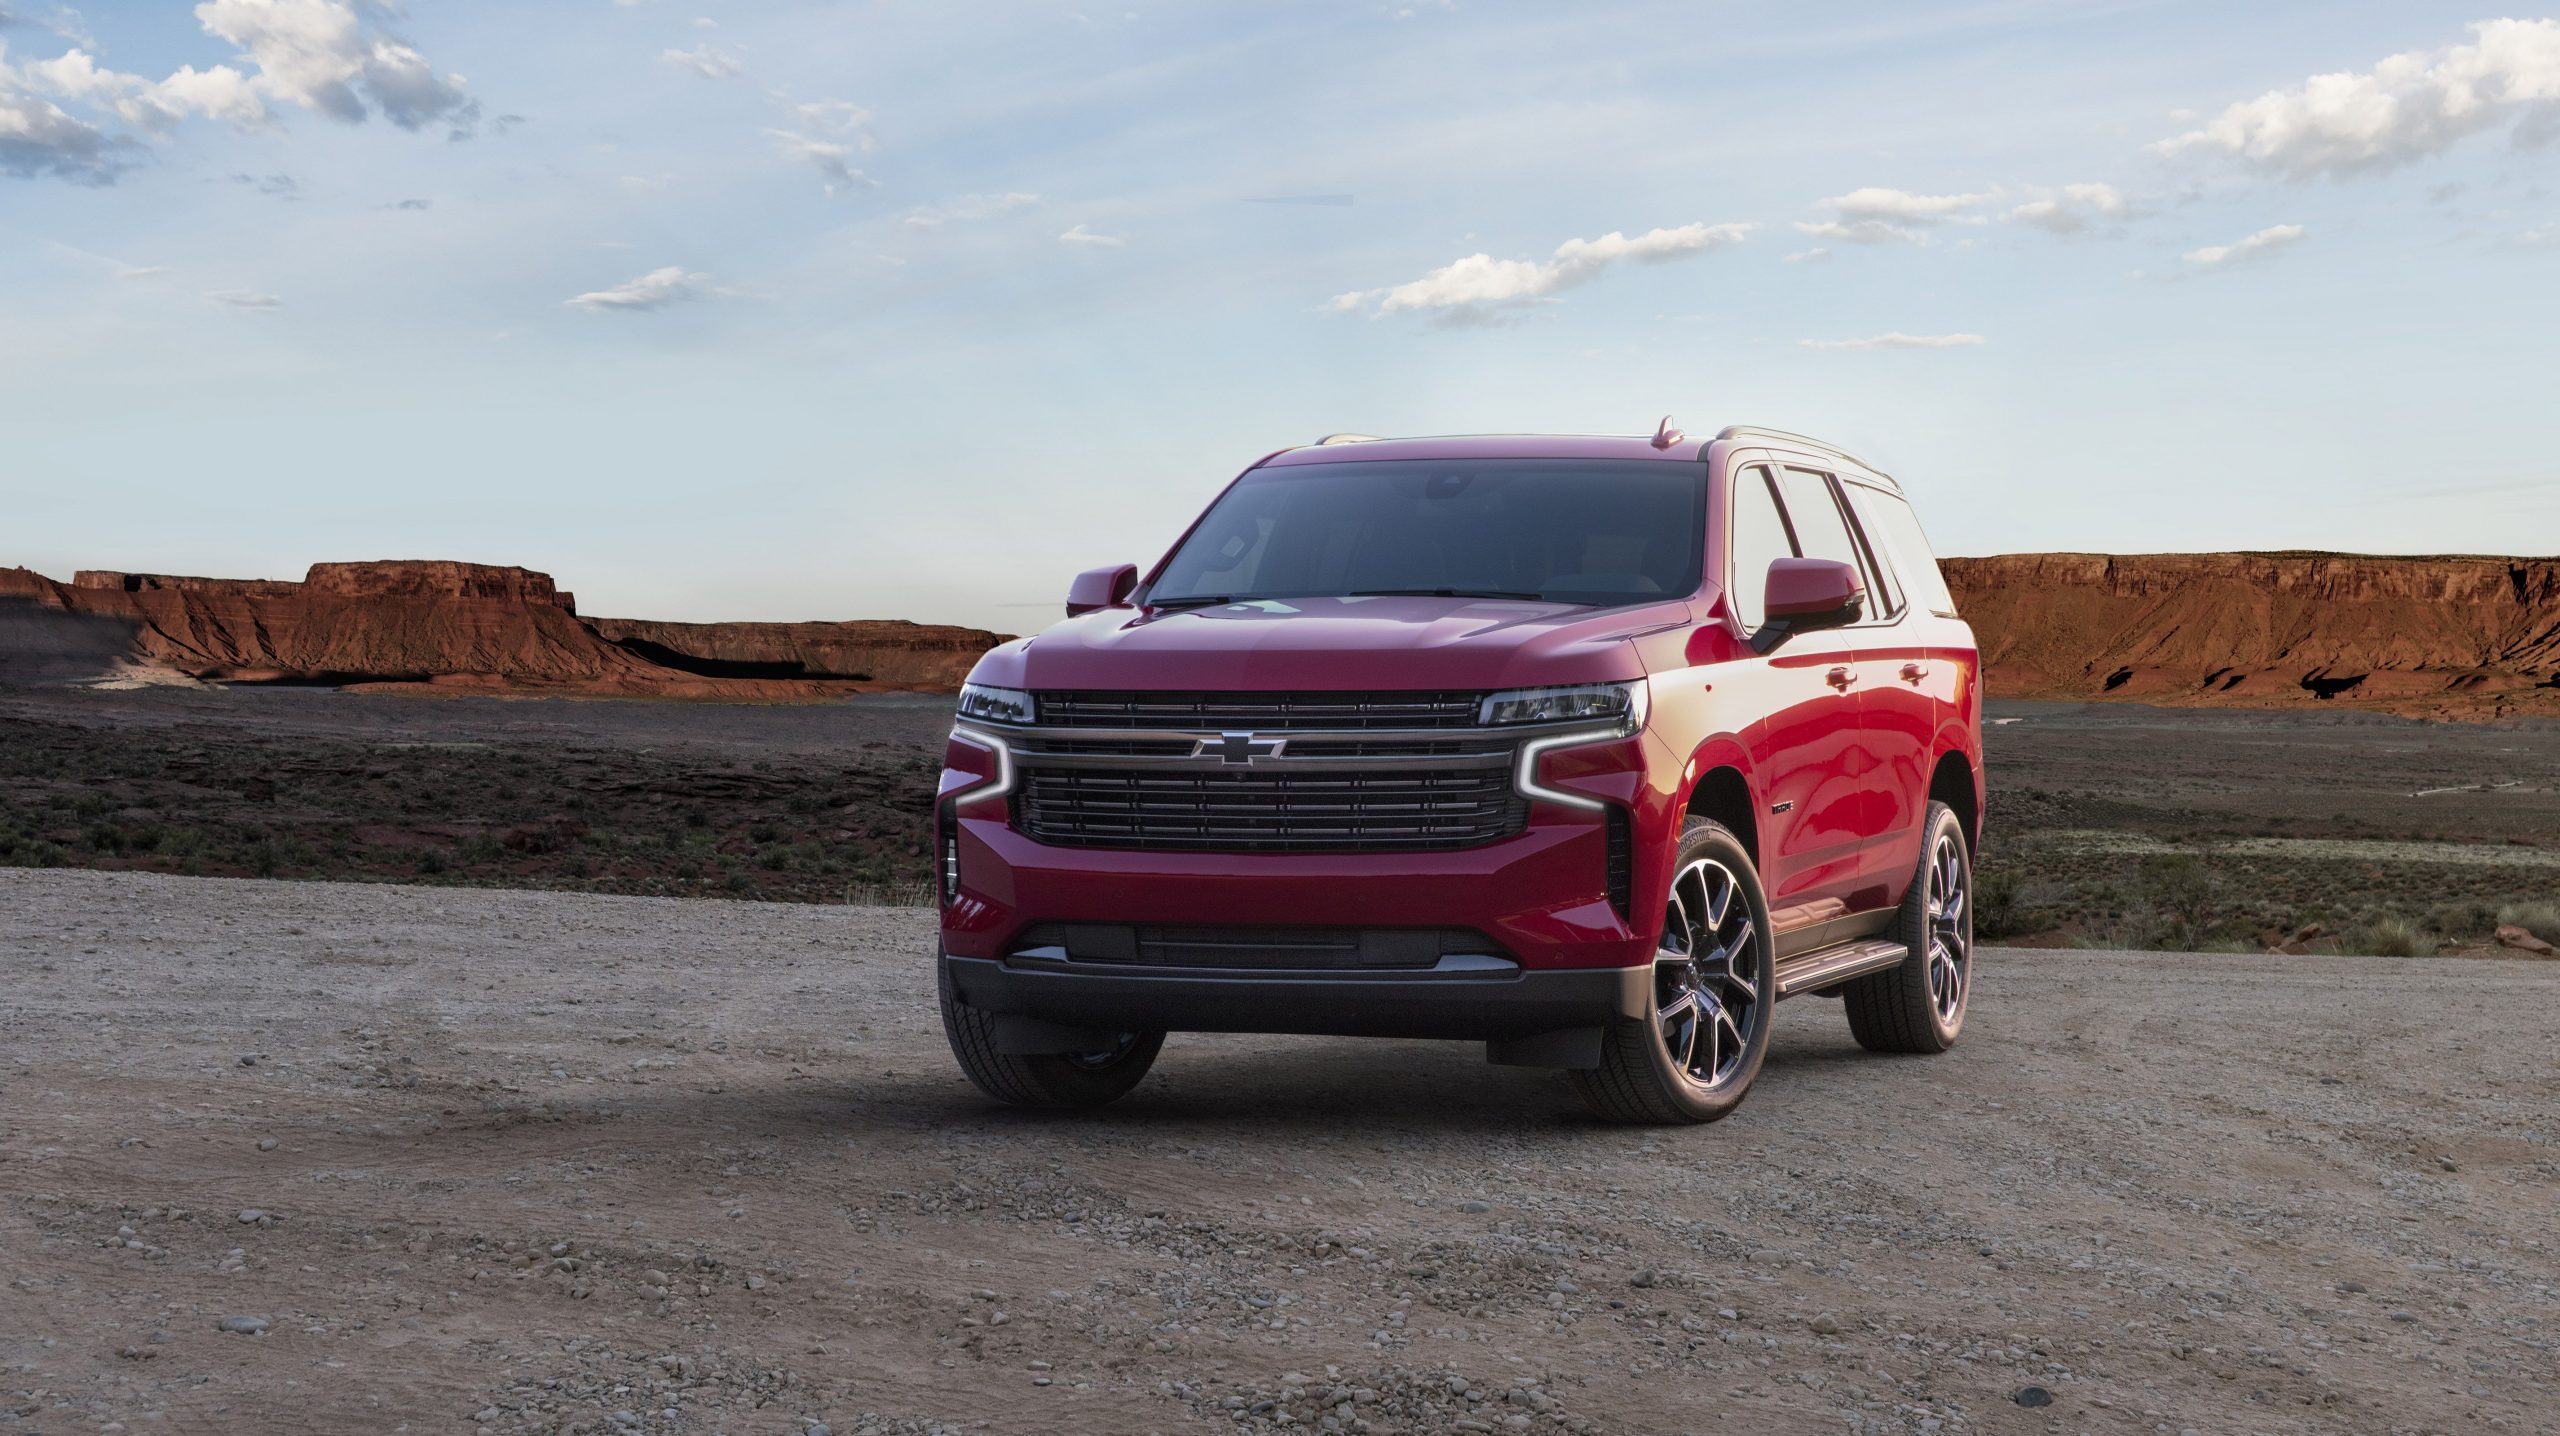 2021 Chevrolet Tahoe: What We Know So Far 2021 Chevy Tahoe Lt Manual, Options, Price